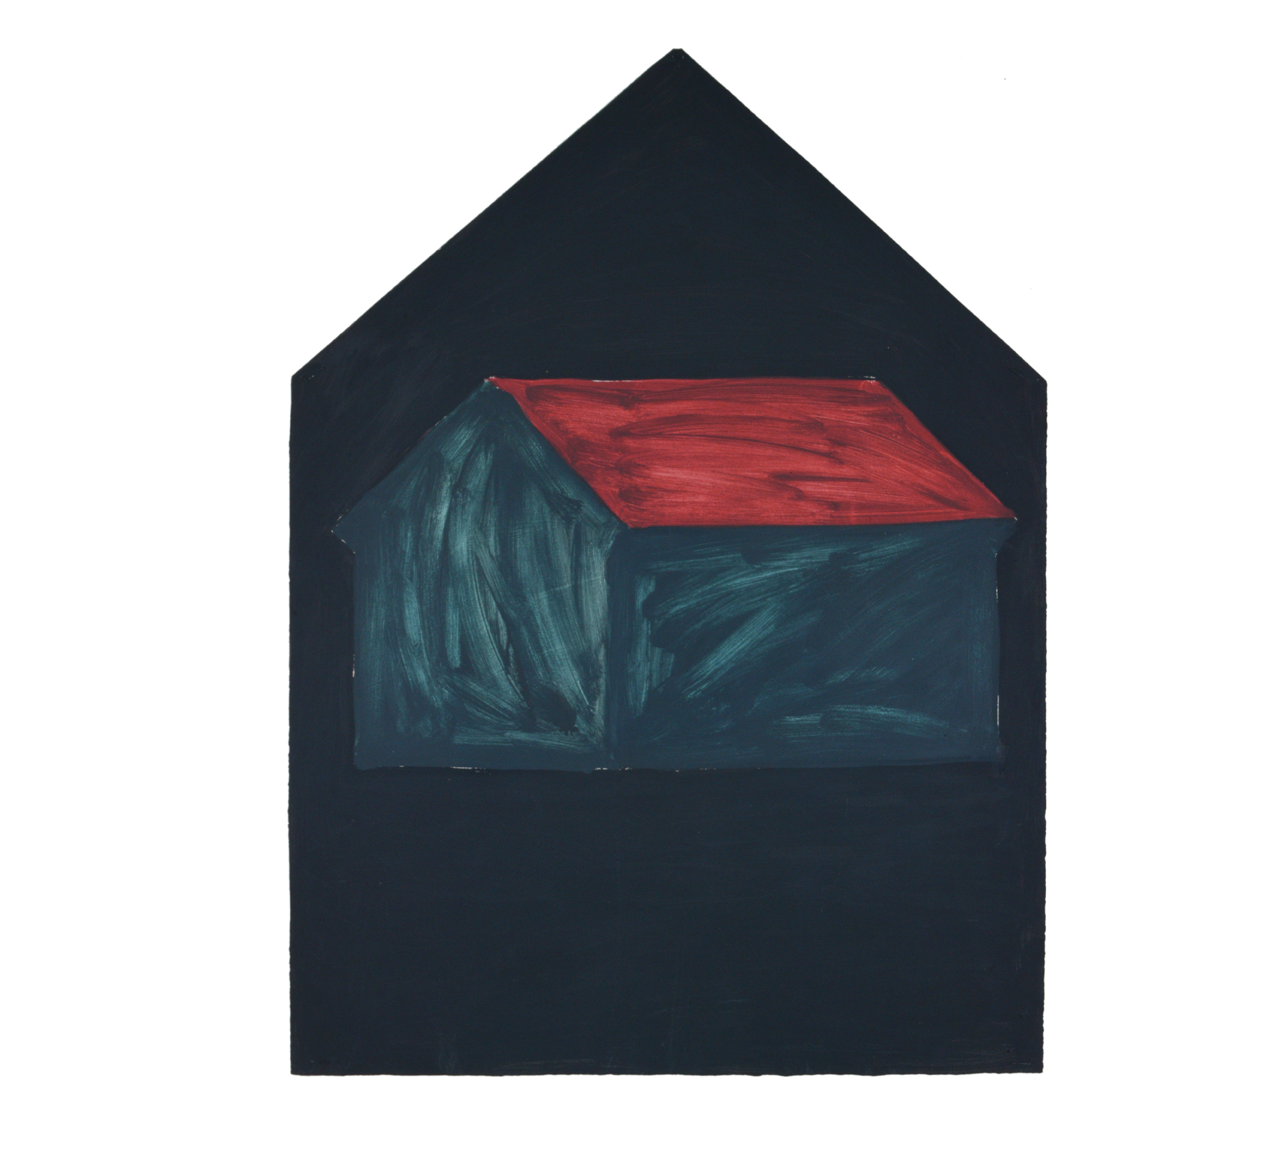 """Single House, dark"" 1981, oil on paper, 106 x 79 cm - Collection Dr.Dohmen, Aachen, Germany - Photo Hadler/Stuhr"